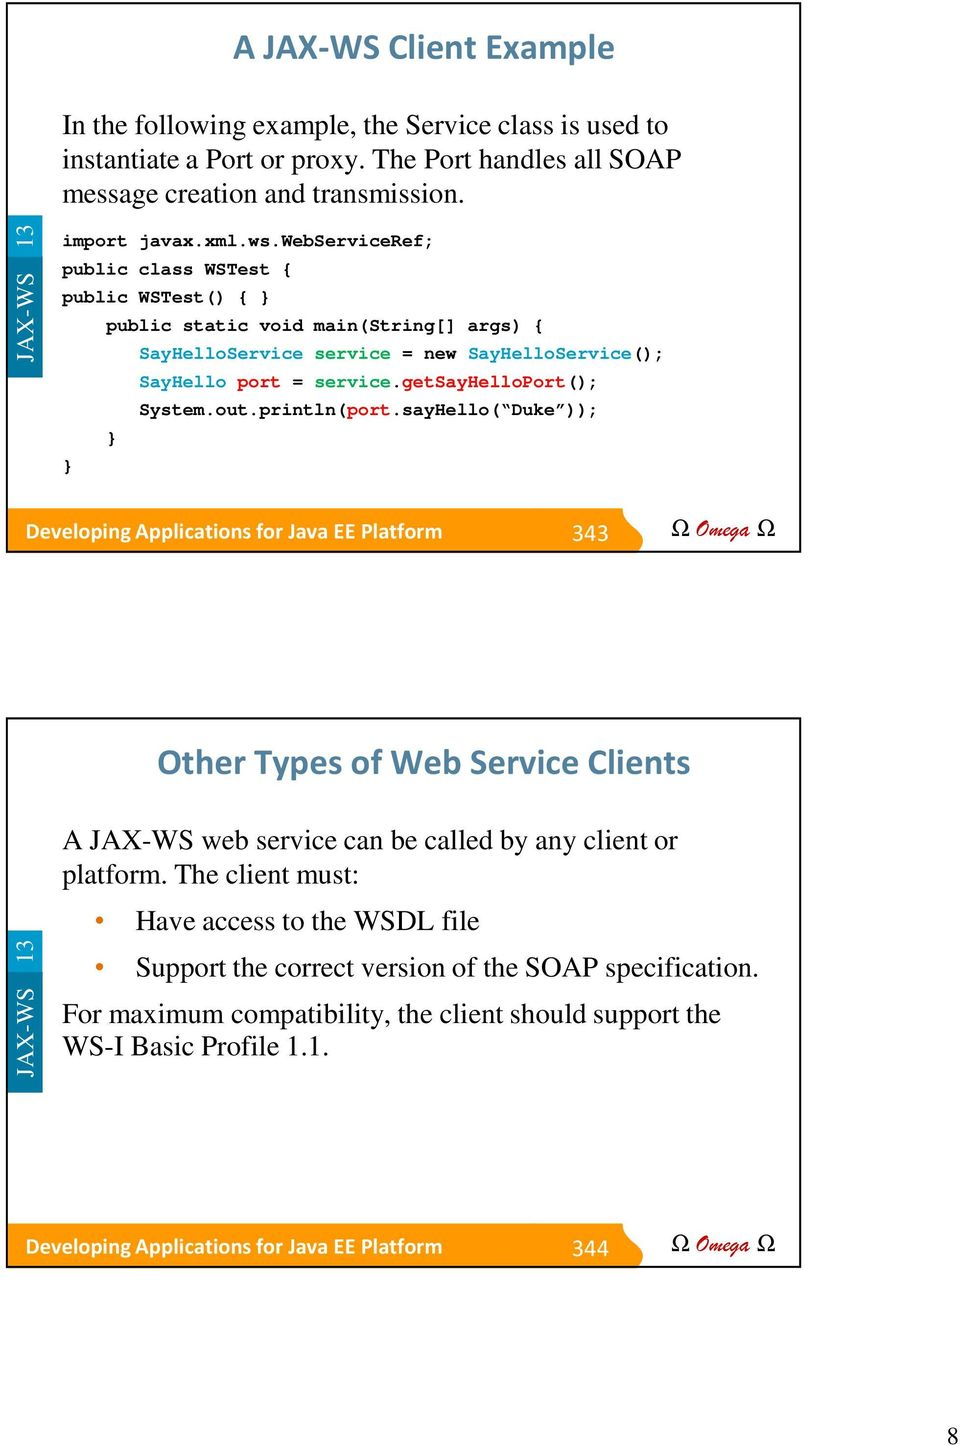 Module 13 Implementing Java EE Web Services with JAX-WS - PDF